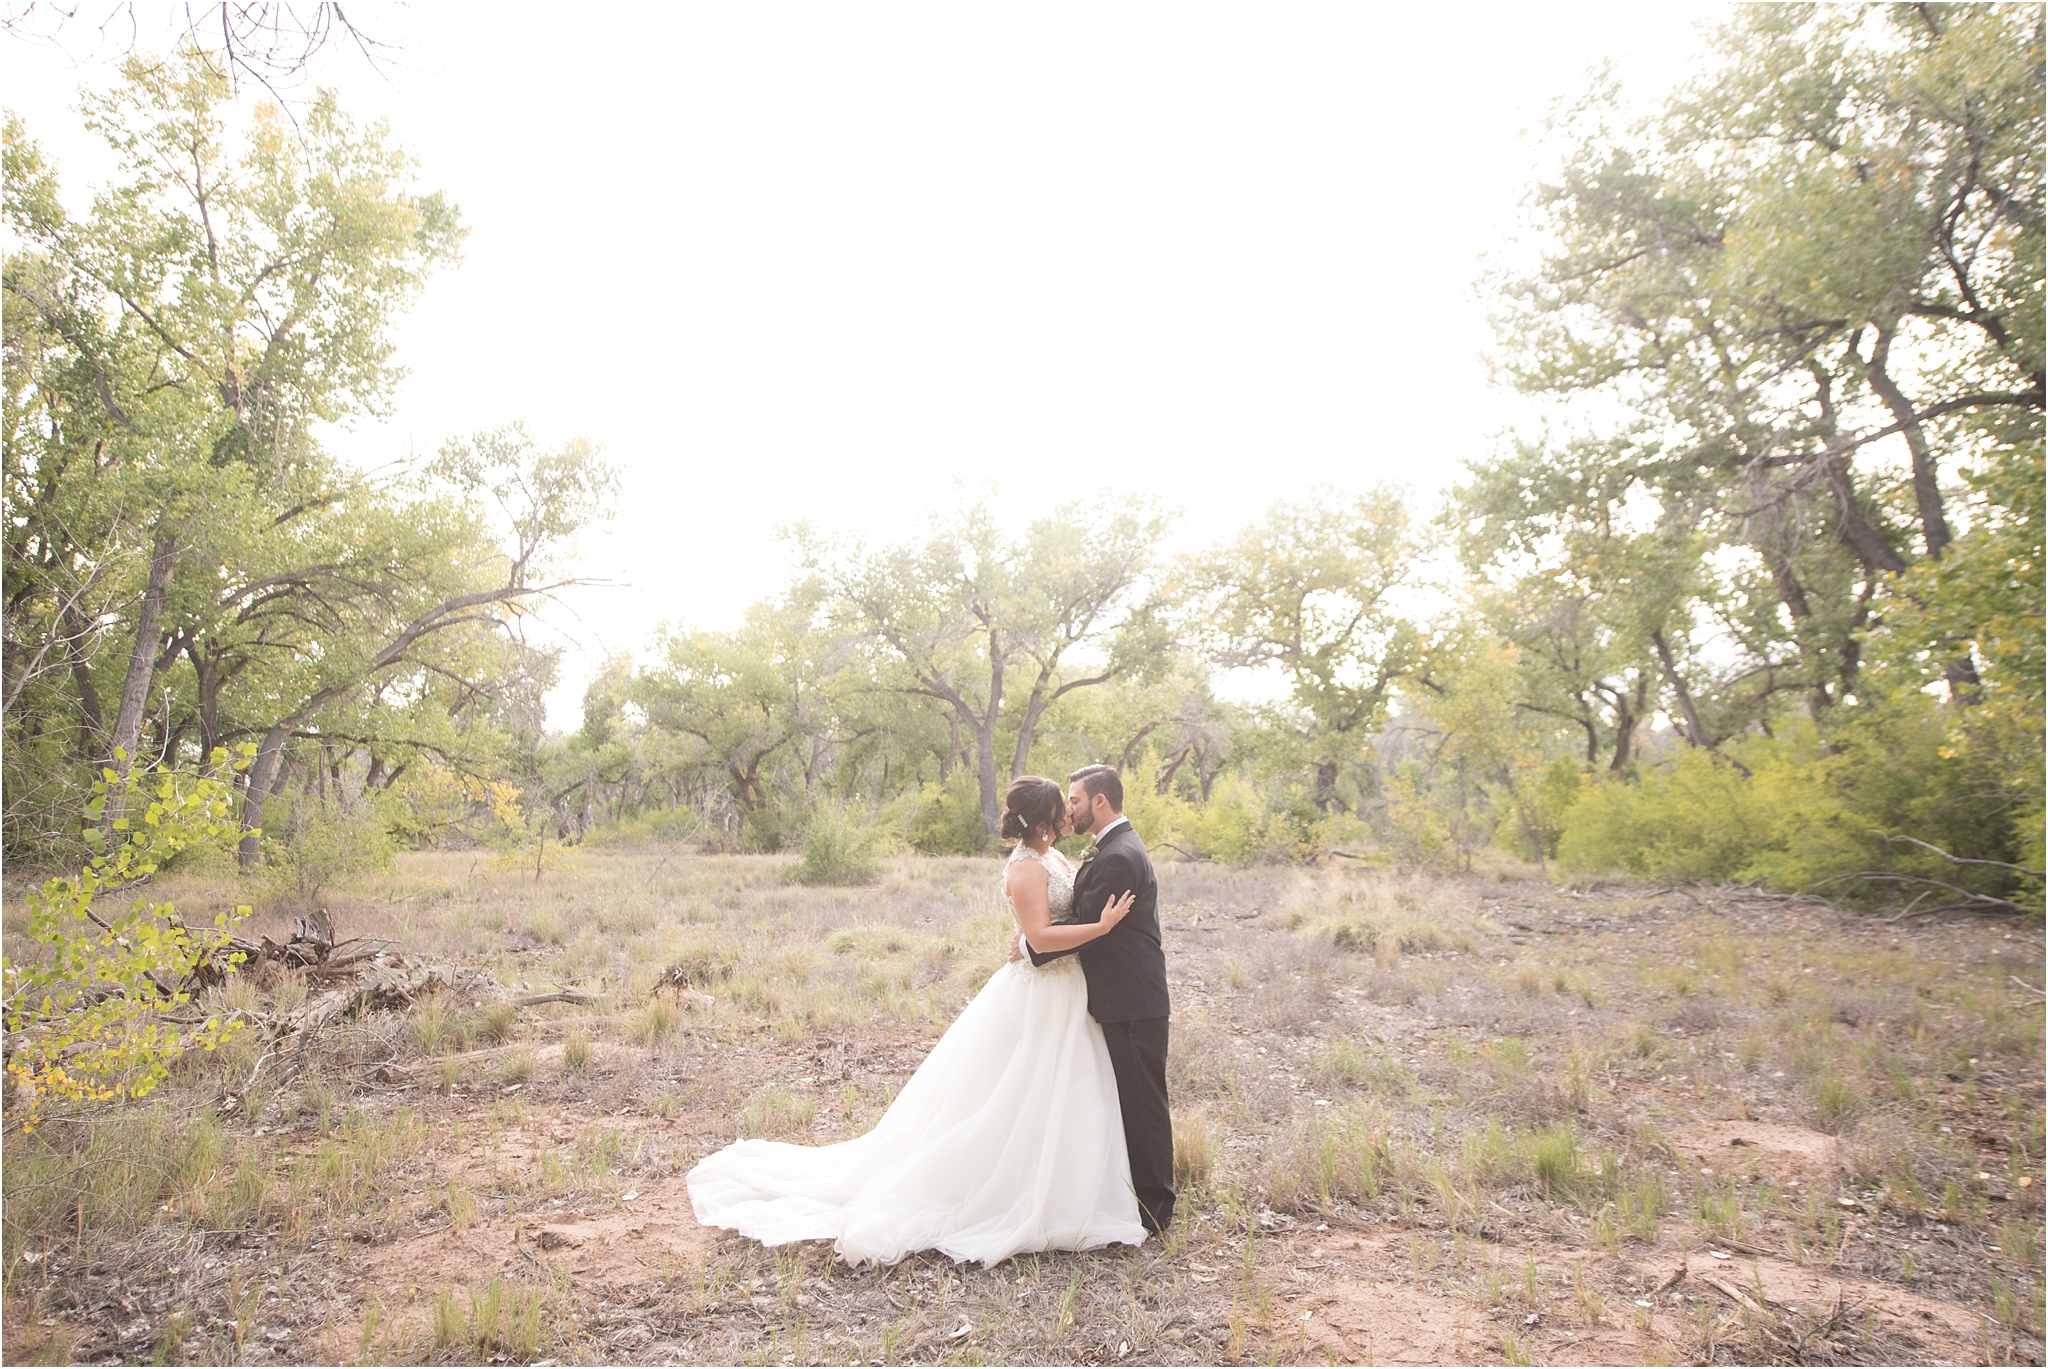 kayla kitts photography - albuquerque wedding photographer - new mexico wedding photographer - desination wedding photographer - cabo wedding photographer_0046.jpg